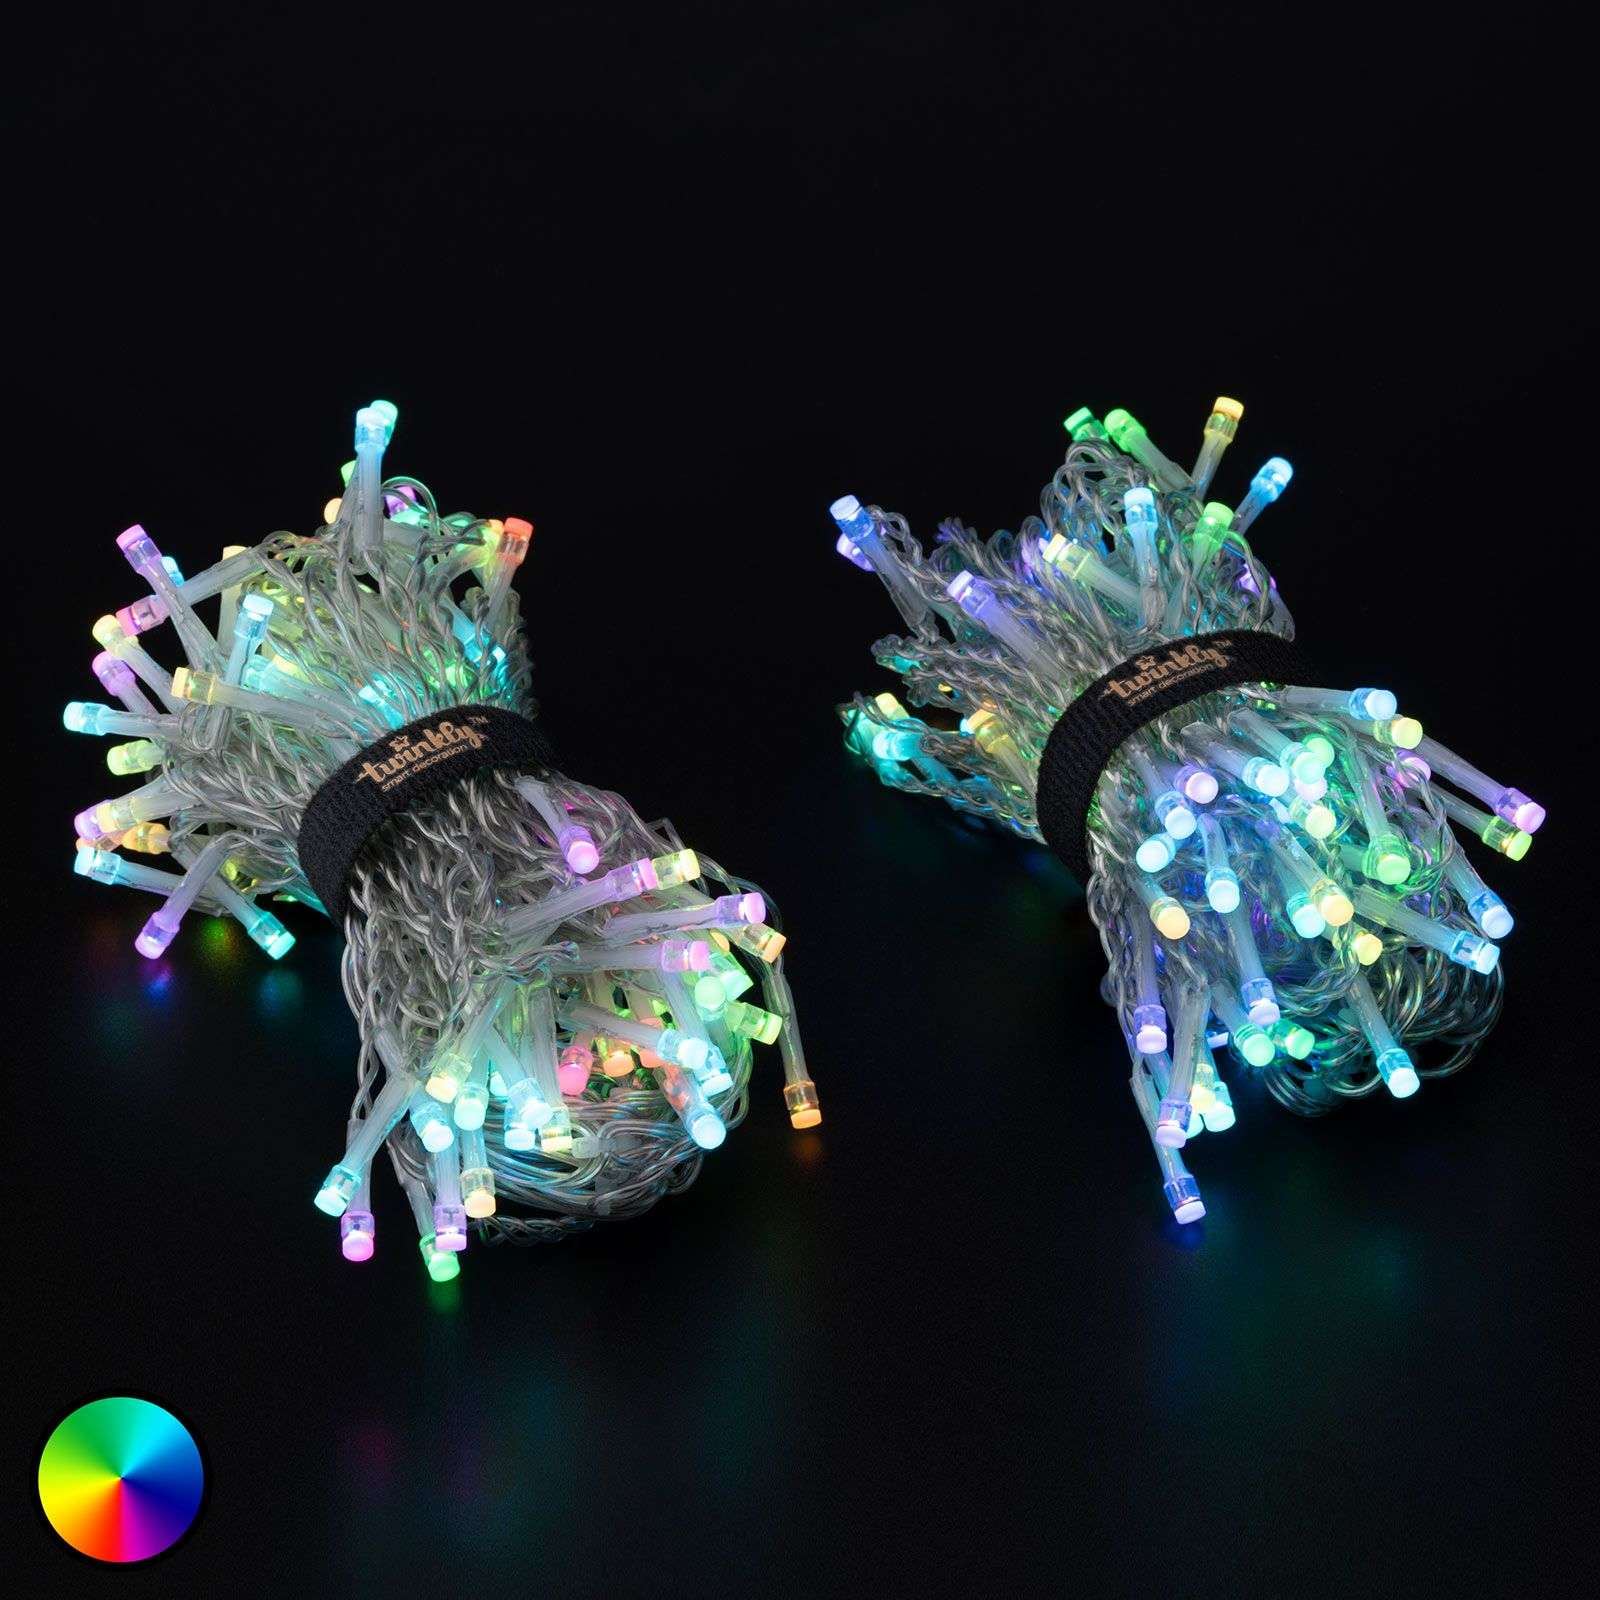 Cortina de luces LED Twinkly para app, RGB